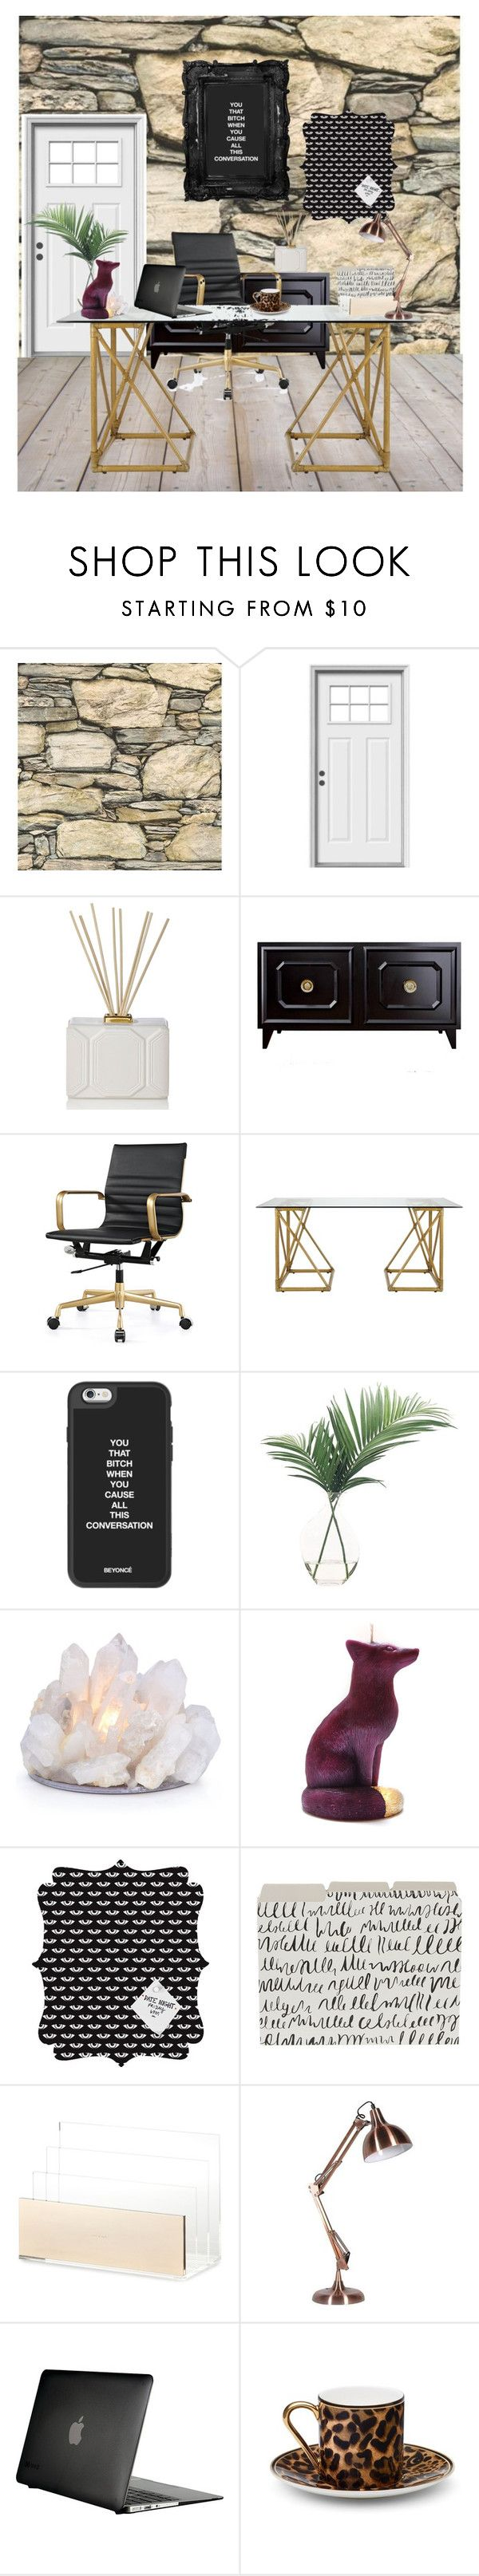 """The office"" by britt-catlynne-weatherall ❤ liked on Polyvore featuring interior, interiors, interior design, home, home decor, interior decorating, Craftsman, Nest Fragrances, Selamat and NDI"